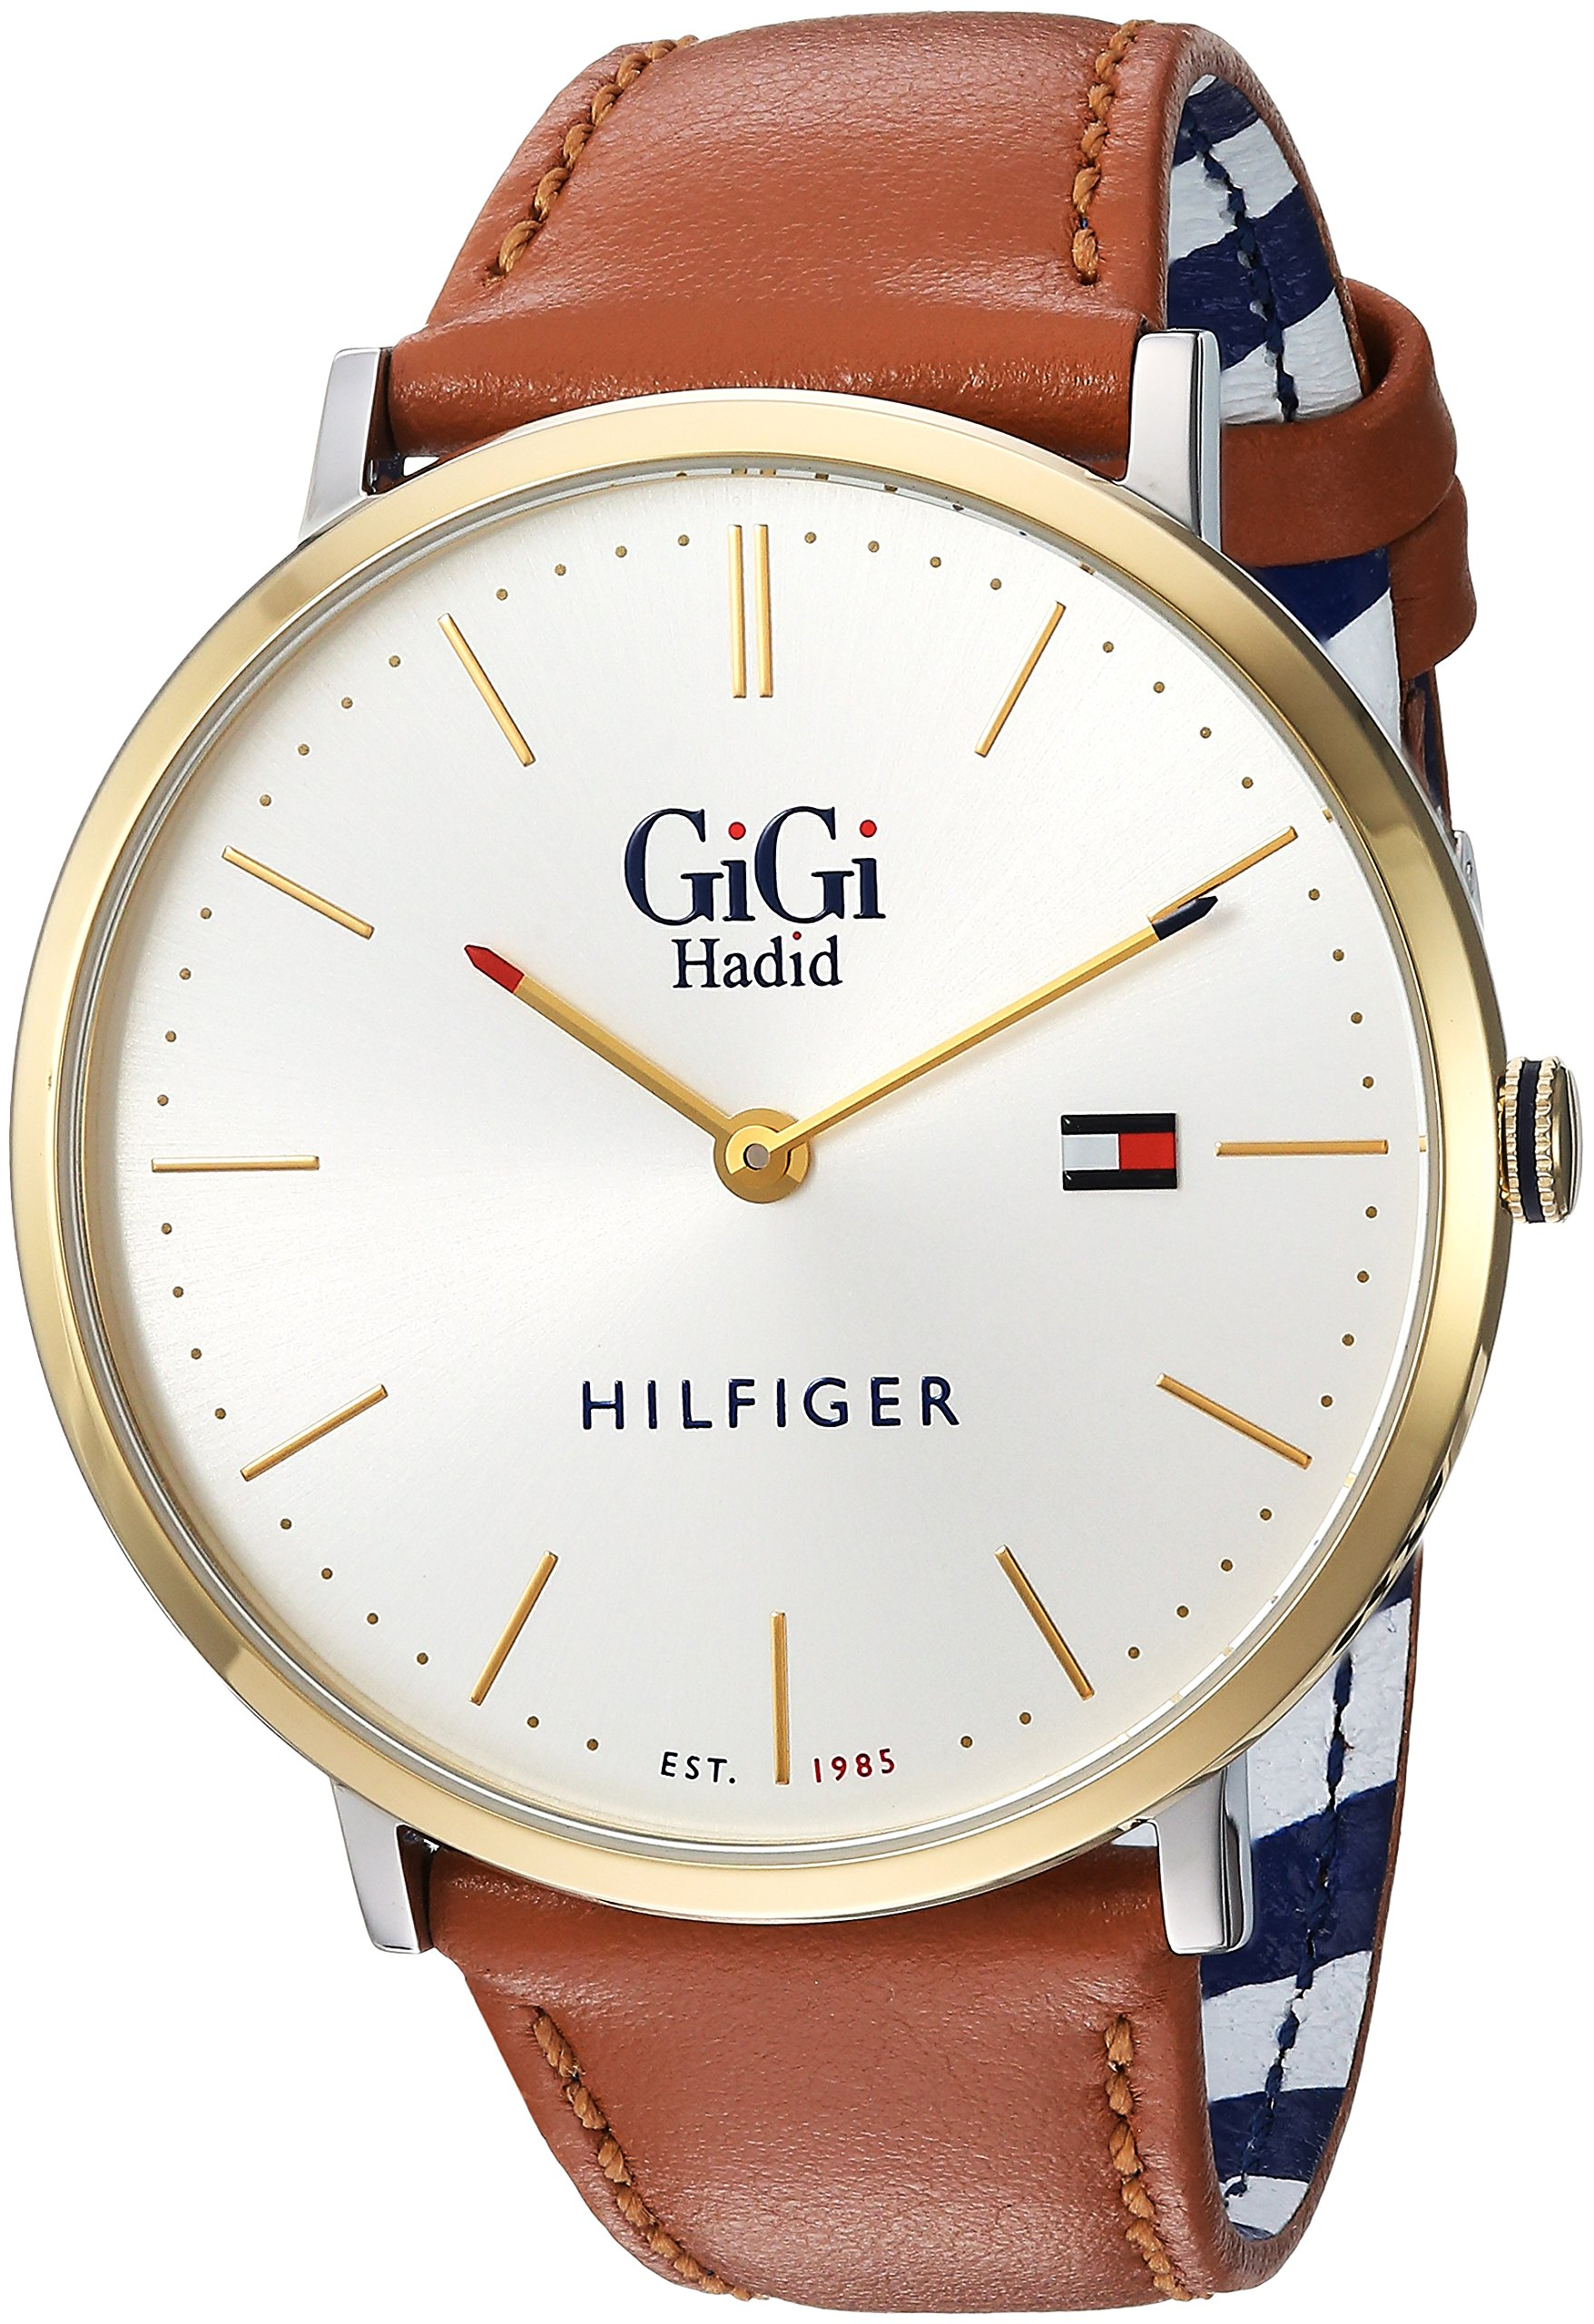 Tommy Hilfiger Women's 'GIGI' Quartz Gold-Tone and Leather Casual Watch, Color:Brown (Model: 1781749) by Tommy Hilfiger